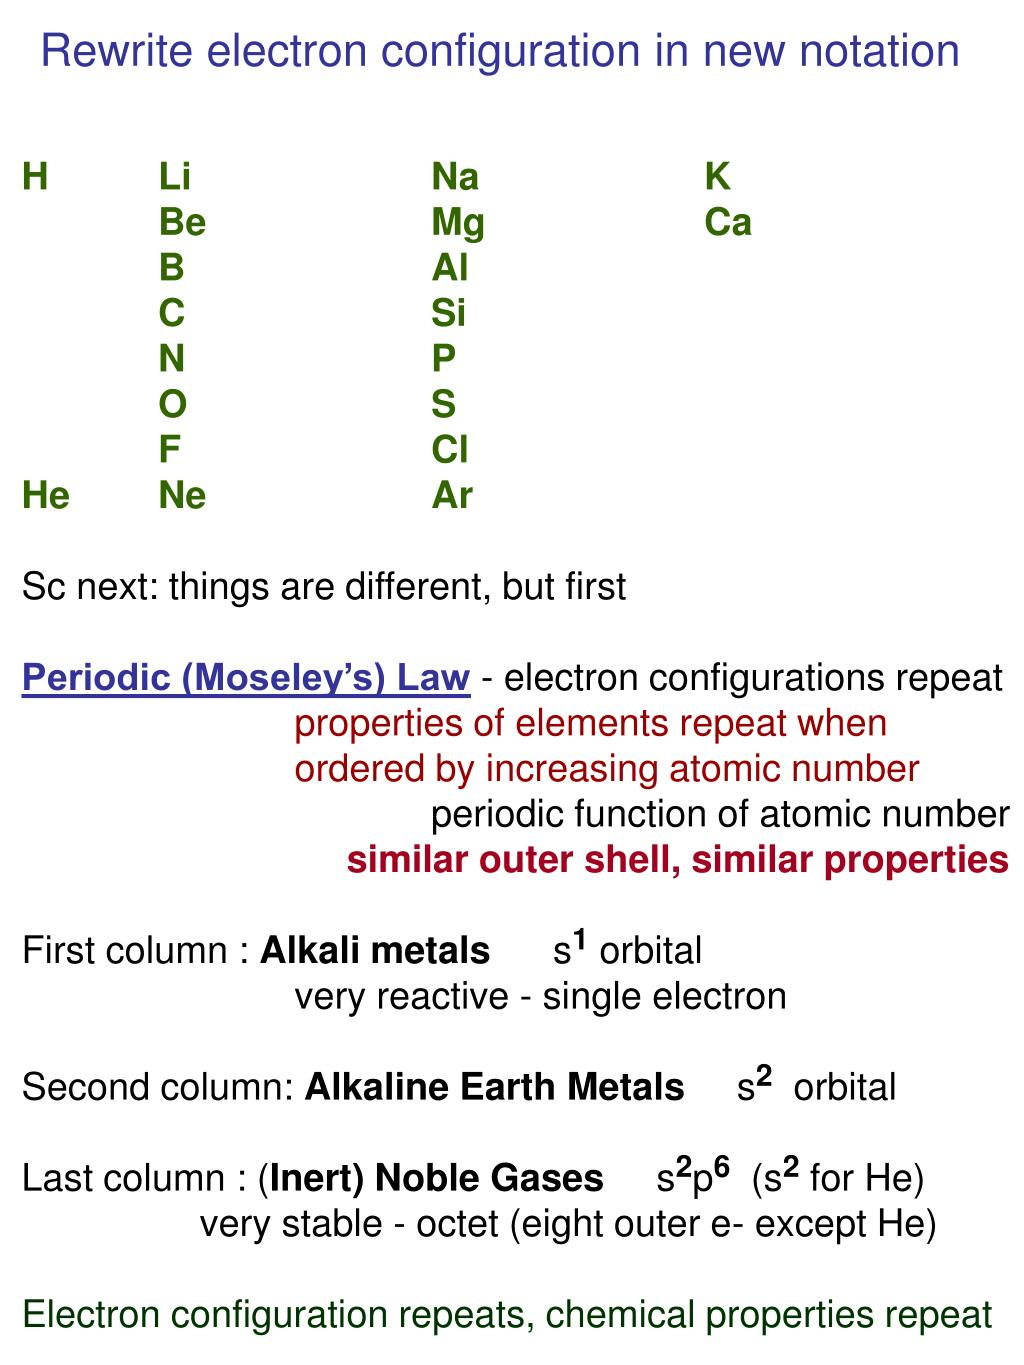 Rewrite electron configuration in new notation